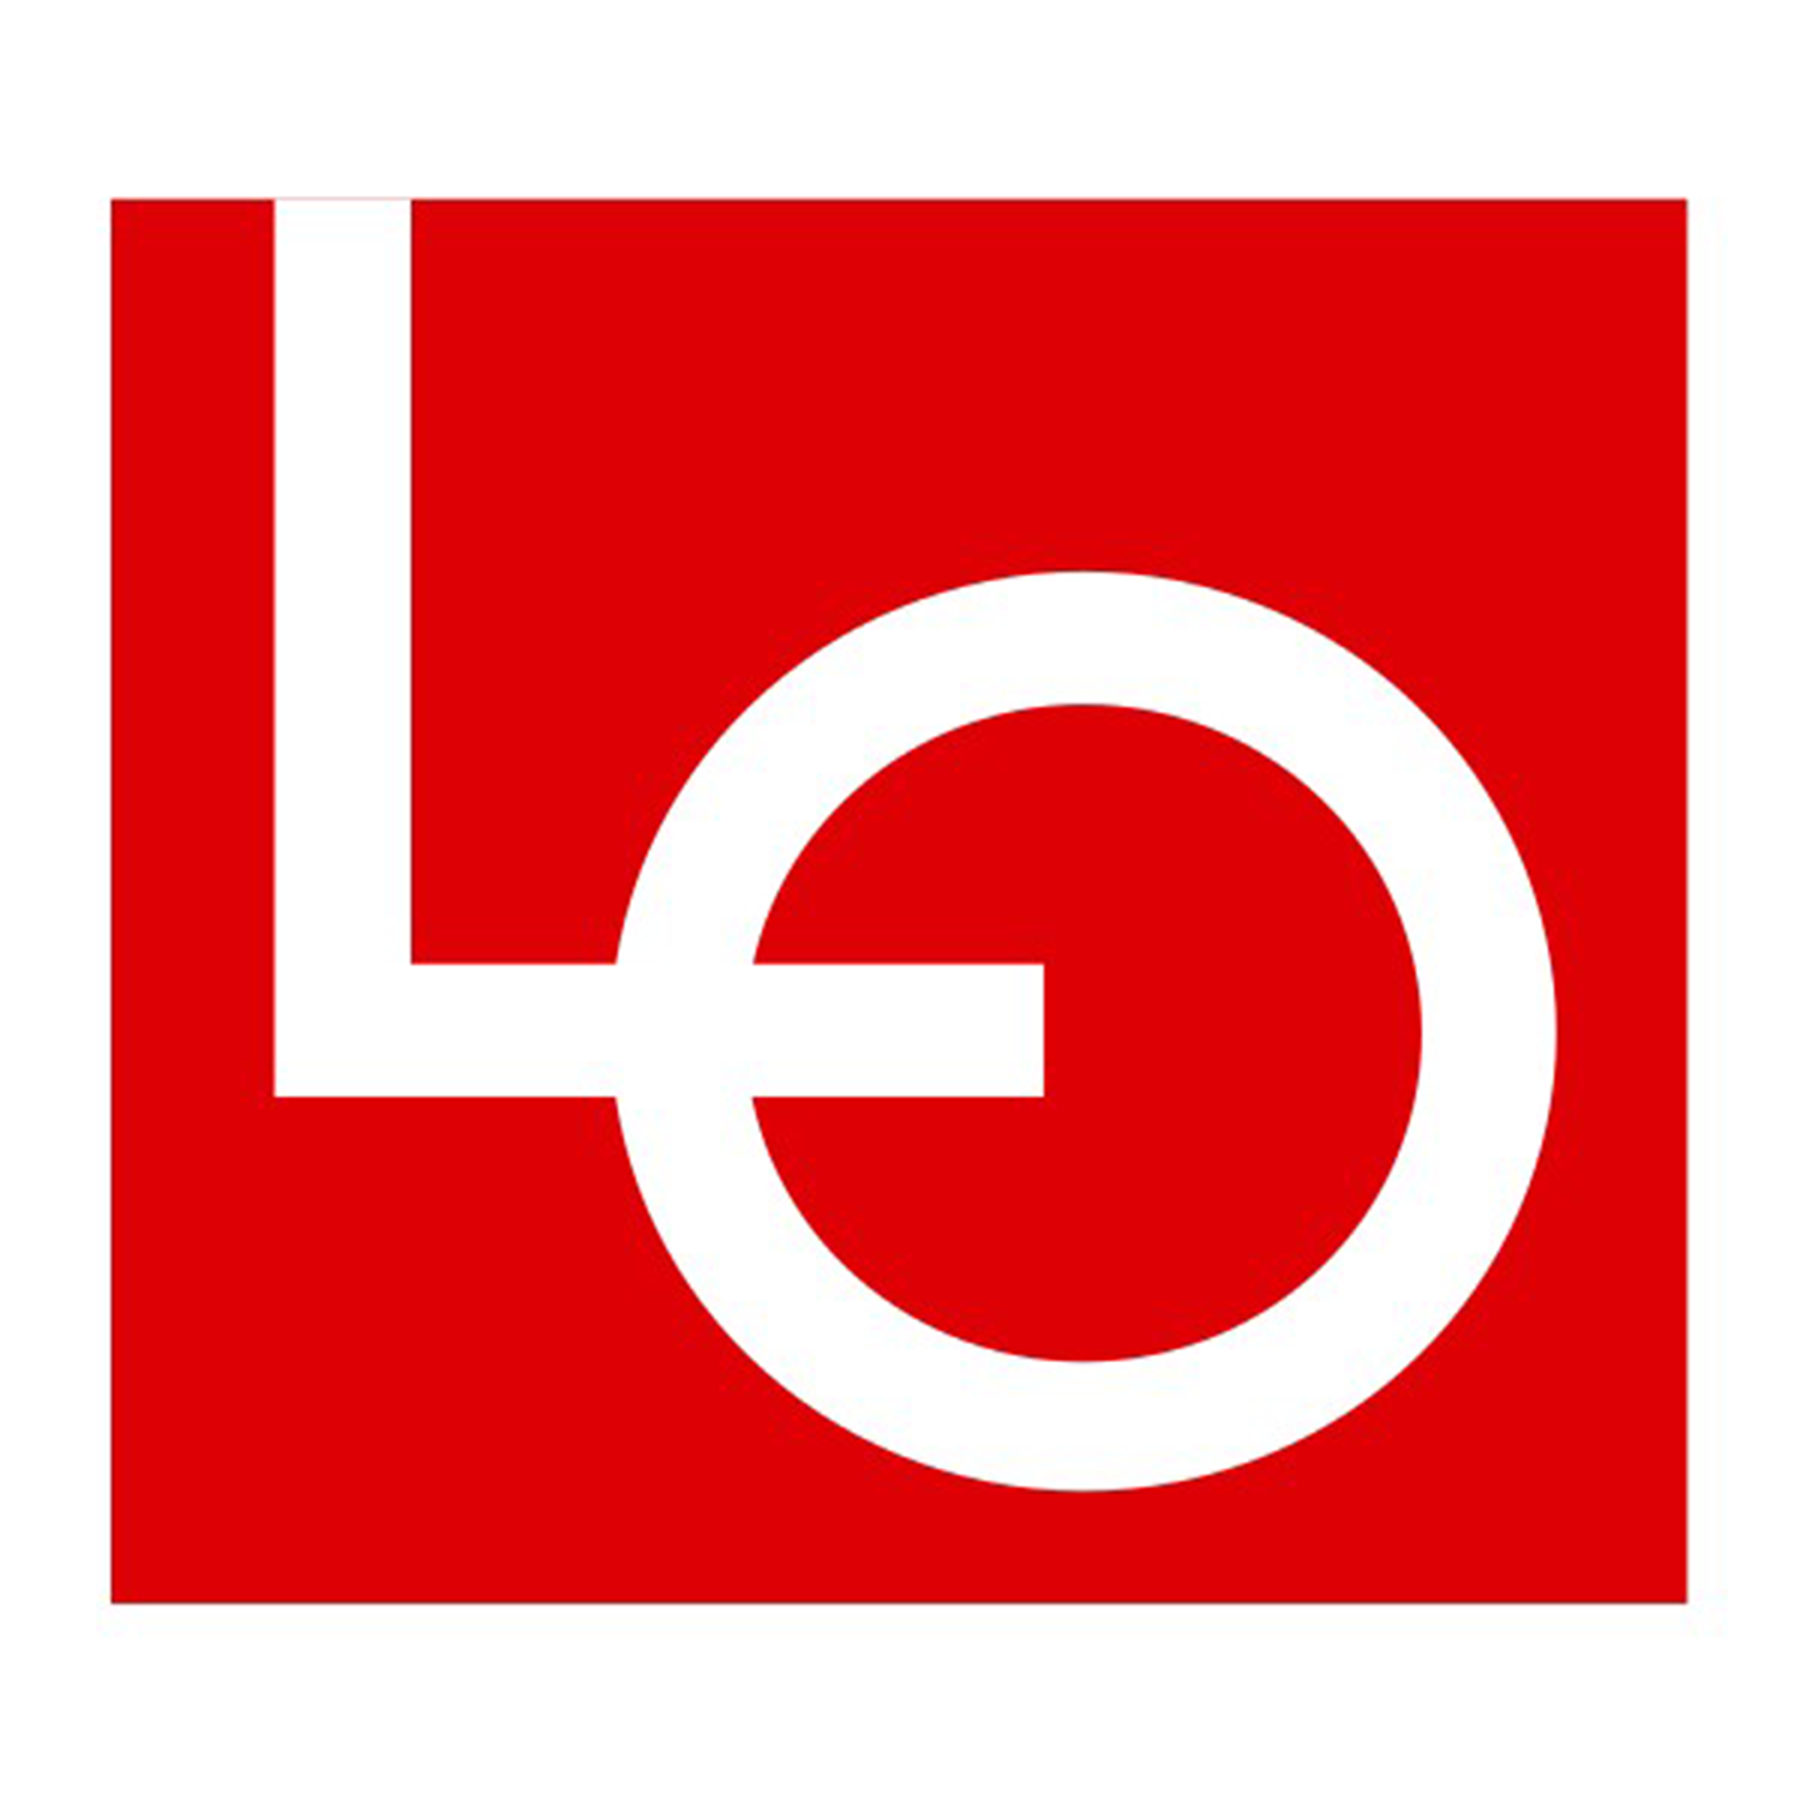 LOlogo.png